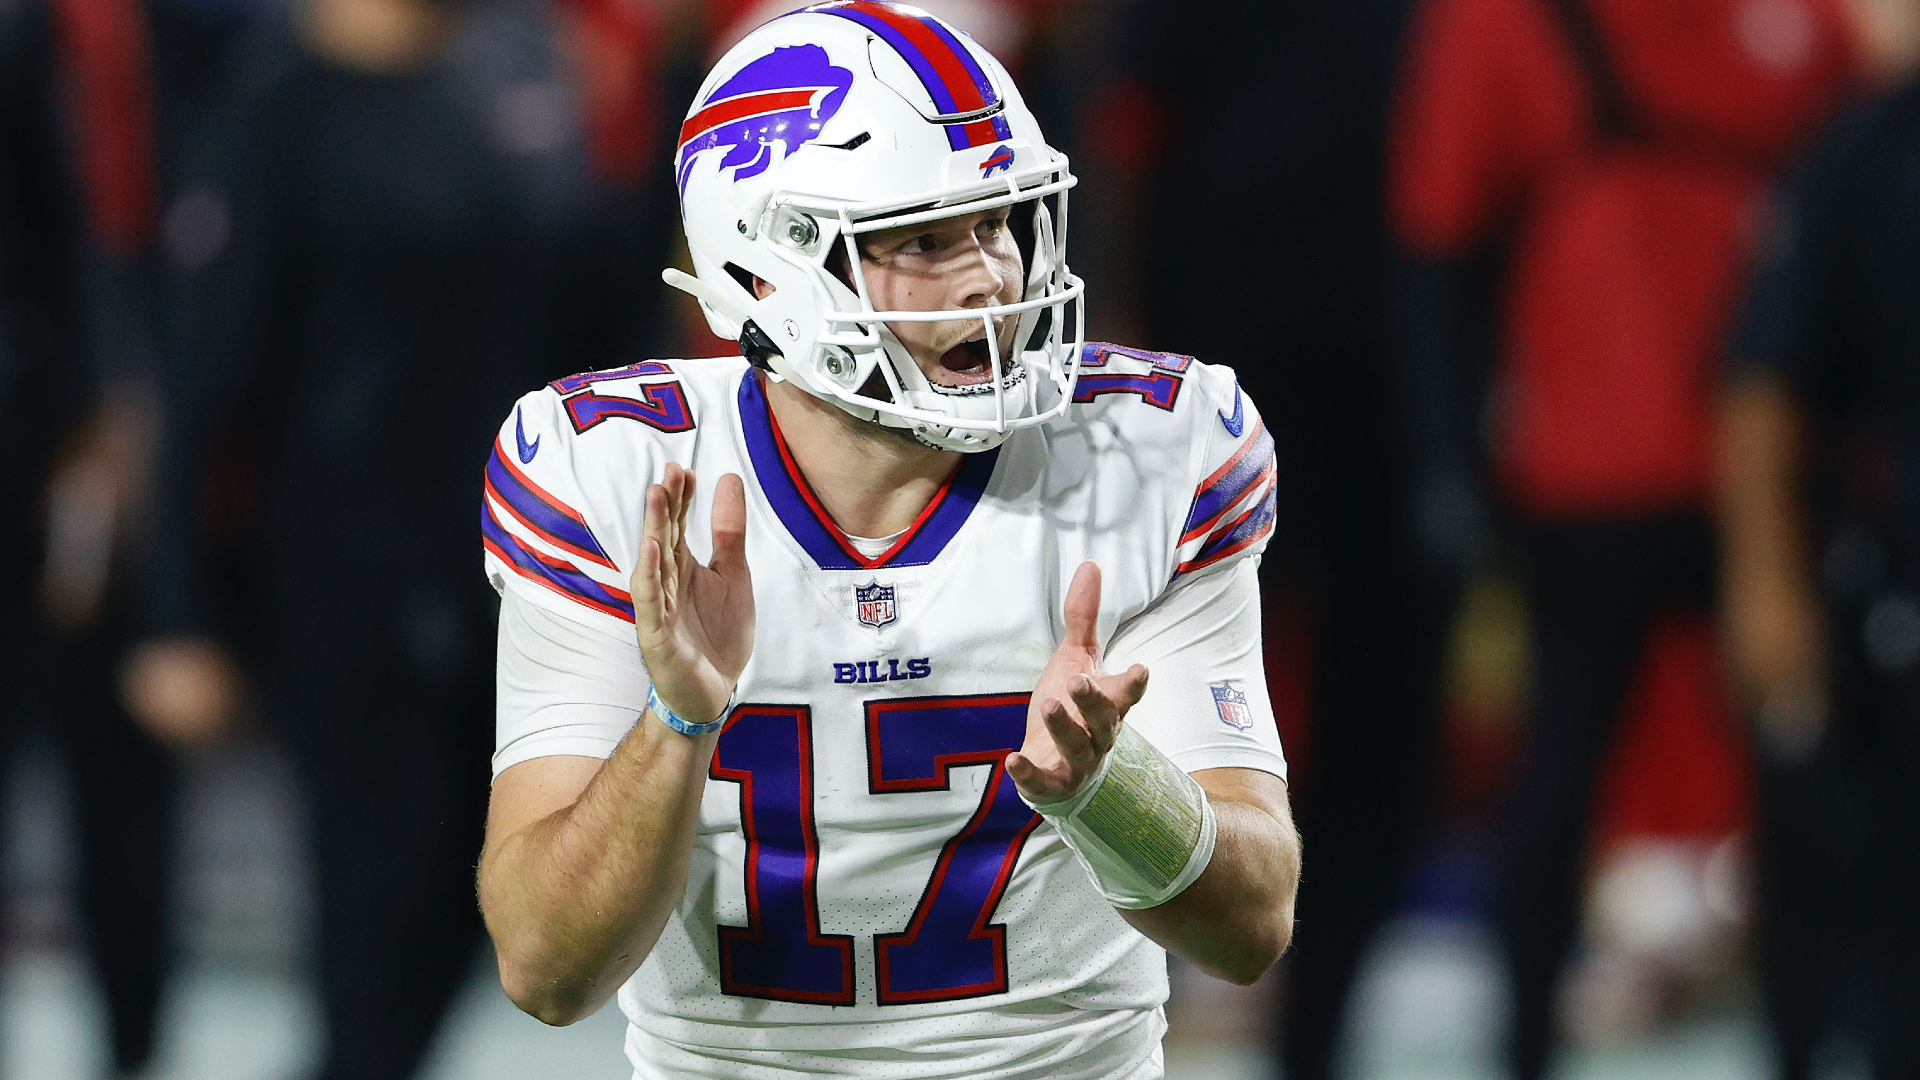 Josh Allen flops, draws roughing the passer call and James Harden comparisons vs. Ravens